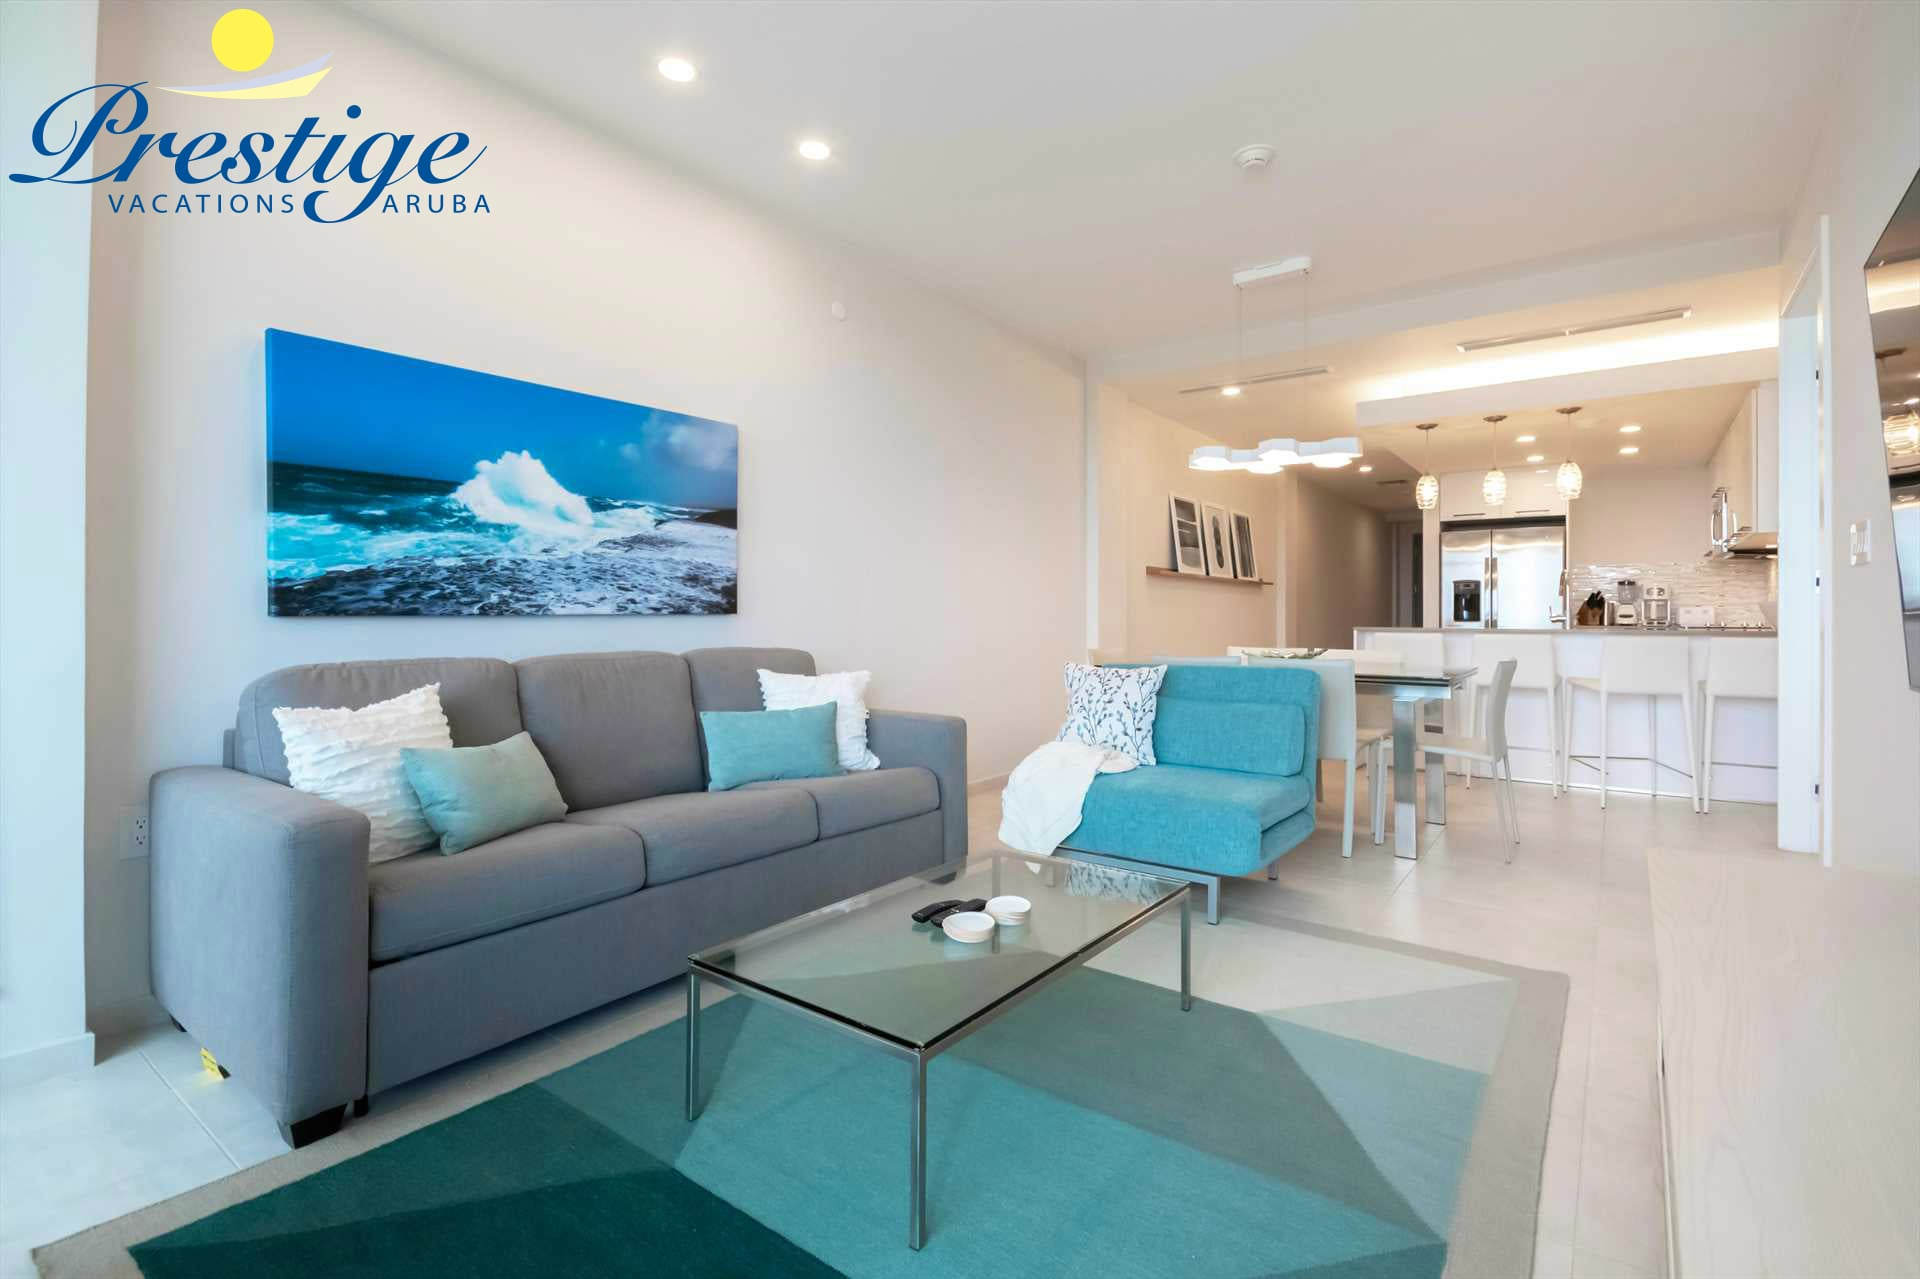 Full view of the modern and tastefully furnished living room